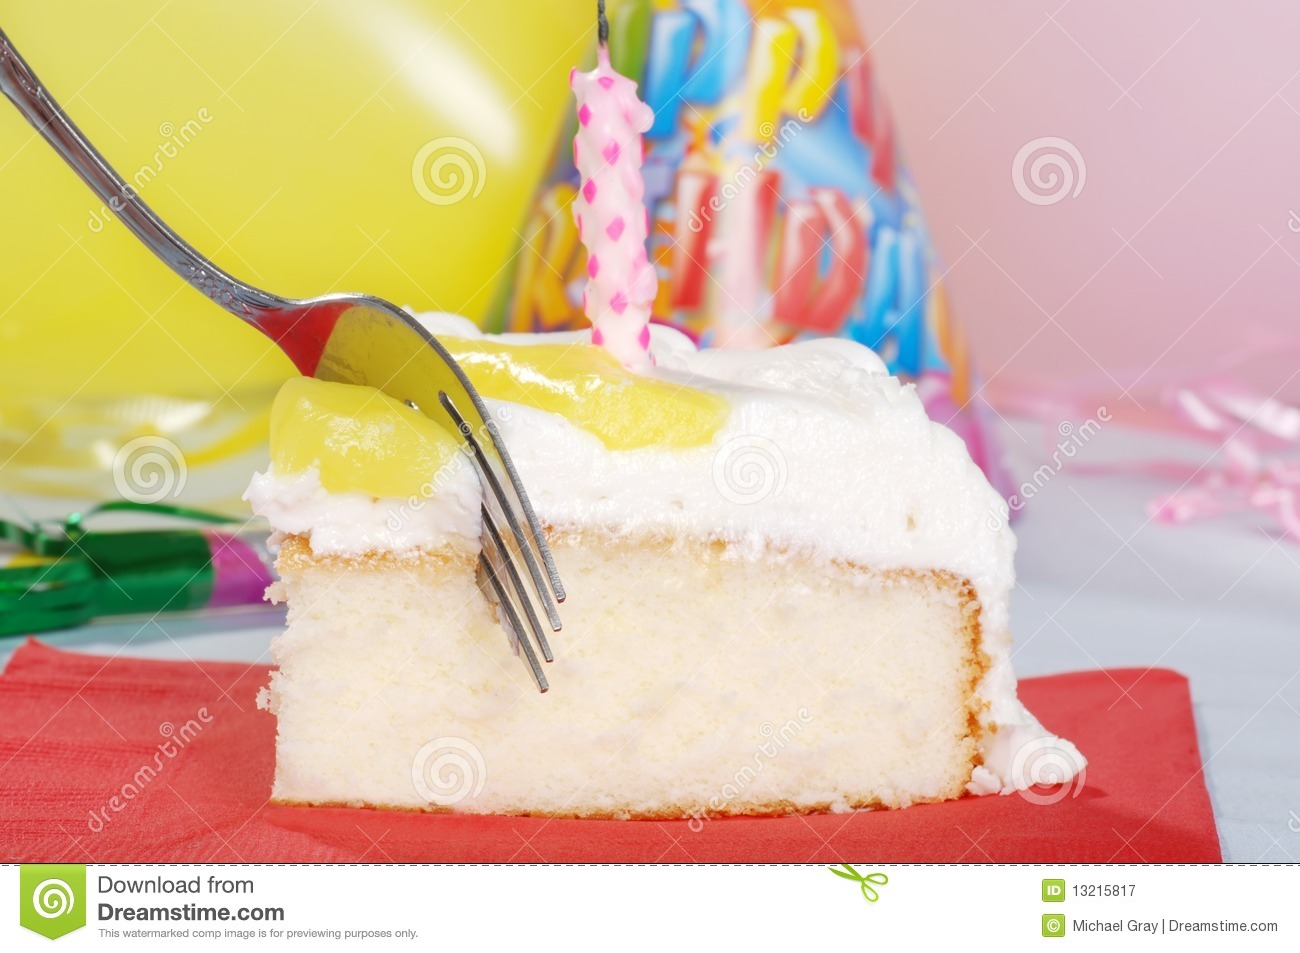 Macro Fork Cutting Birthday Cake With Candle Royalty Free